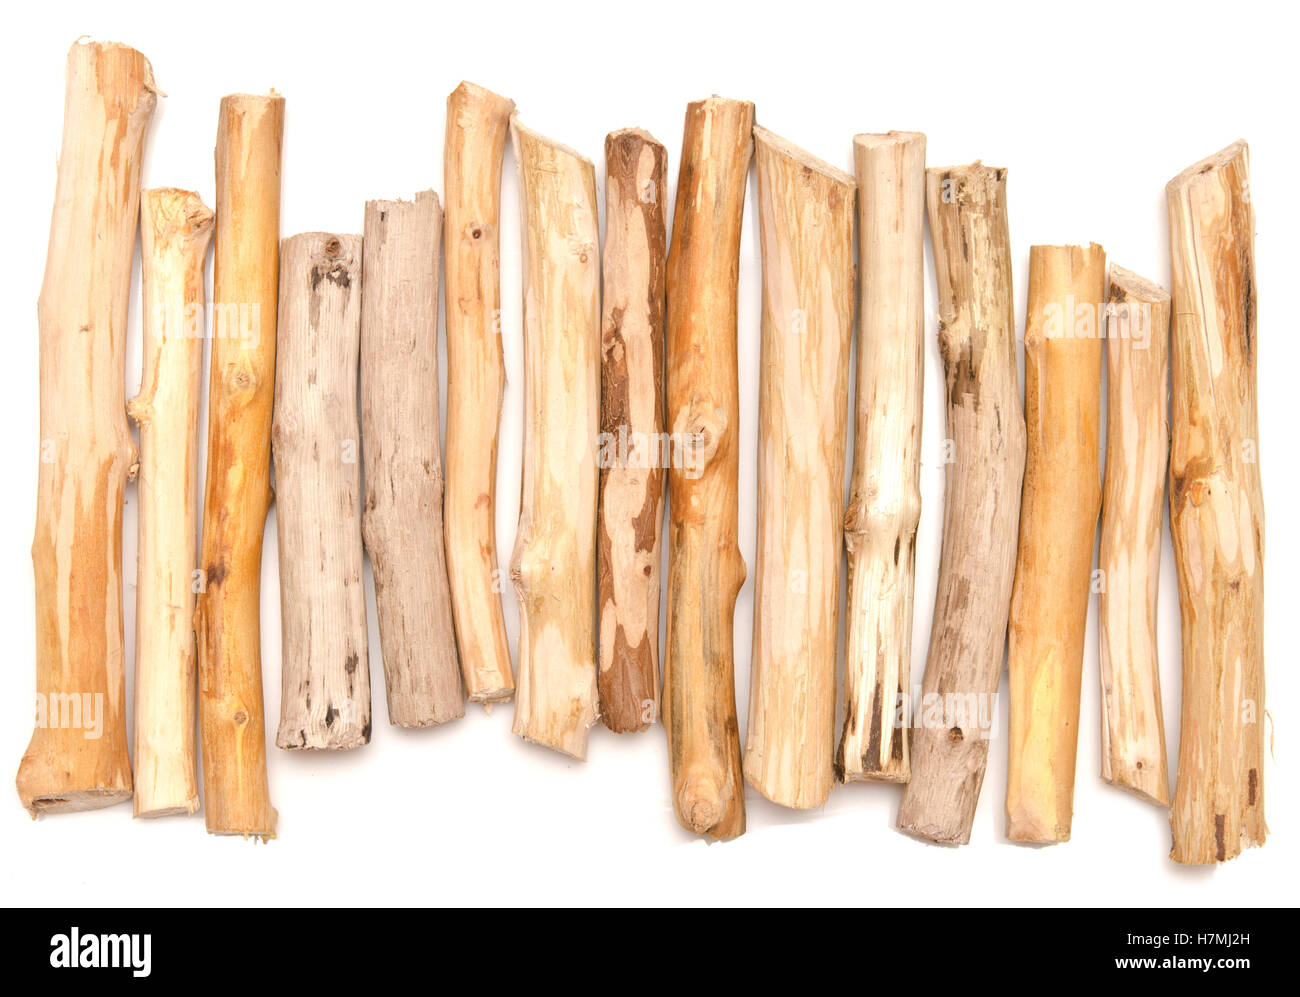 wooden sticks isolated on white background Stock Photo